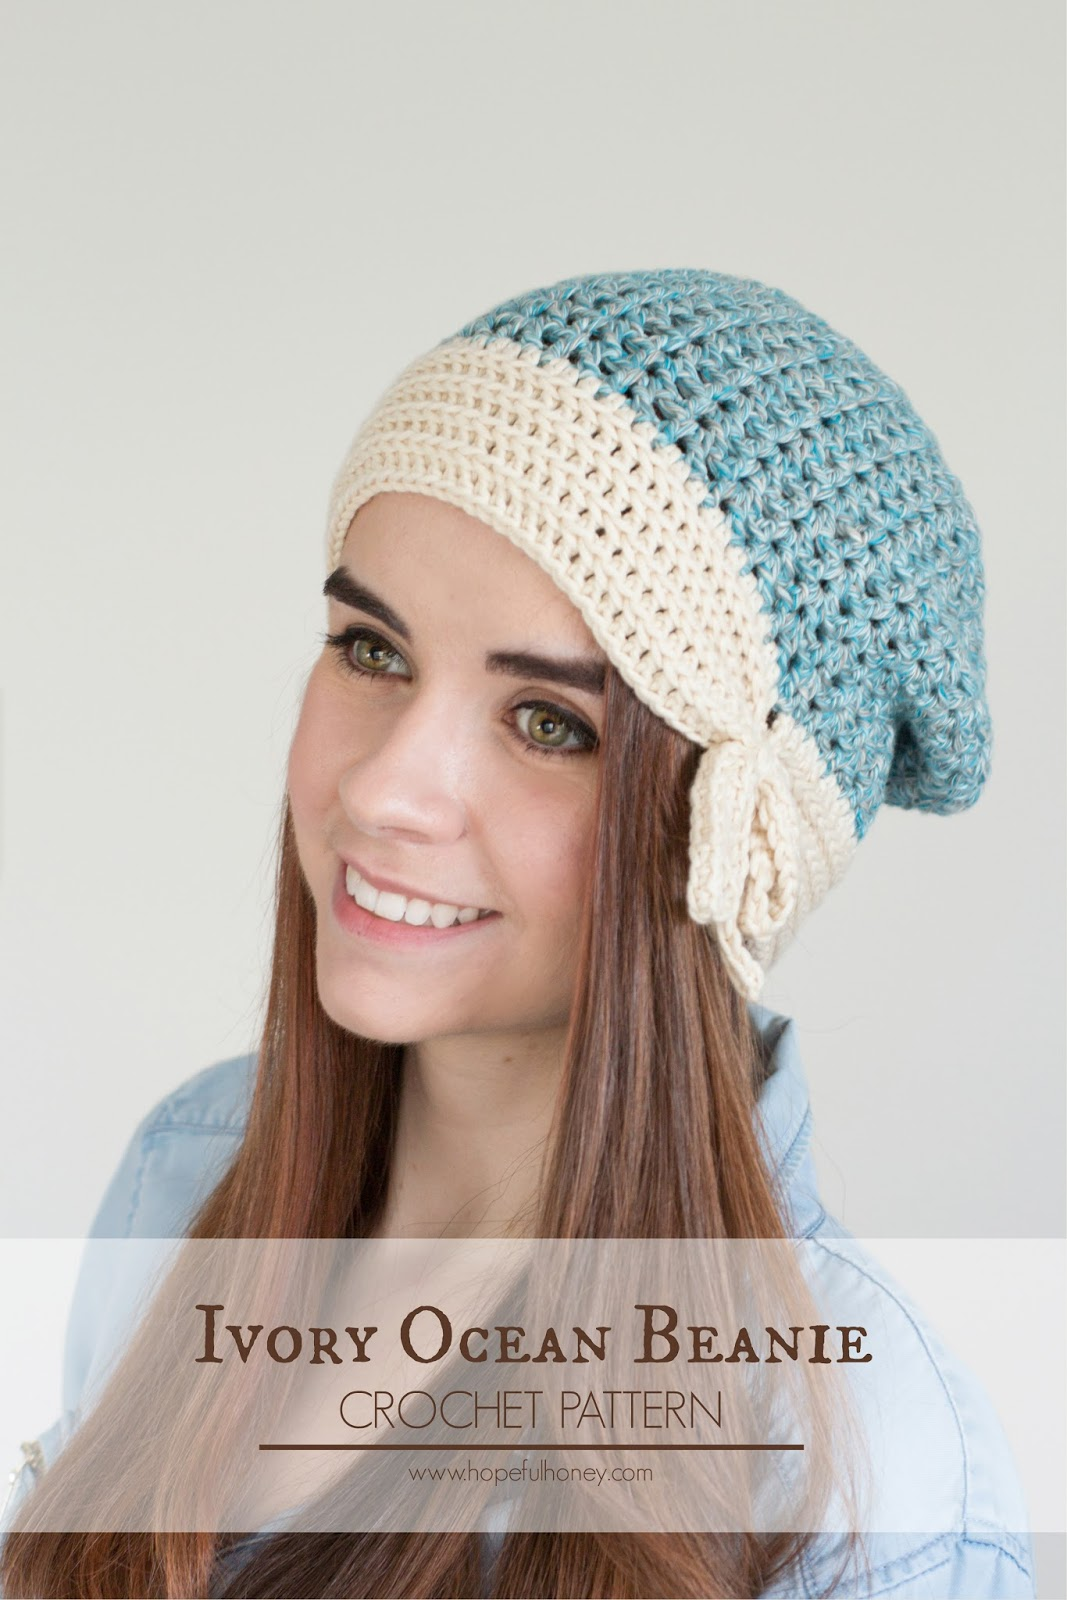 Crochet Patterns Scarfie Yarn : ... Crochet, Create: Ivory Ocean Beanie - Free Crochet Pattern & Yarn